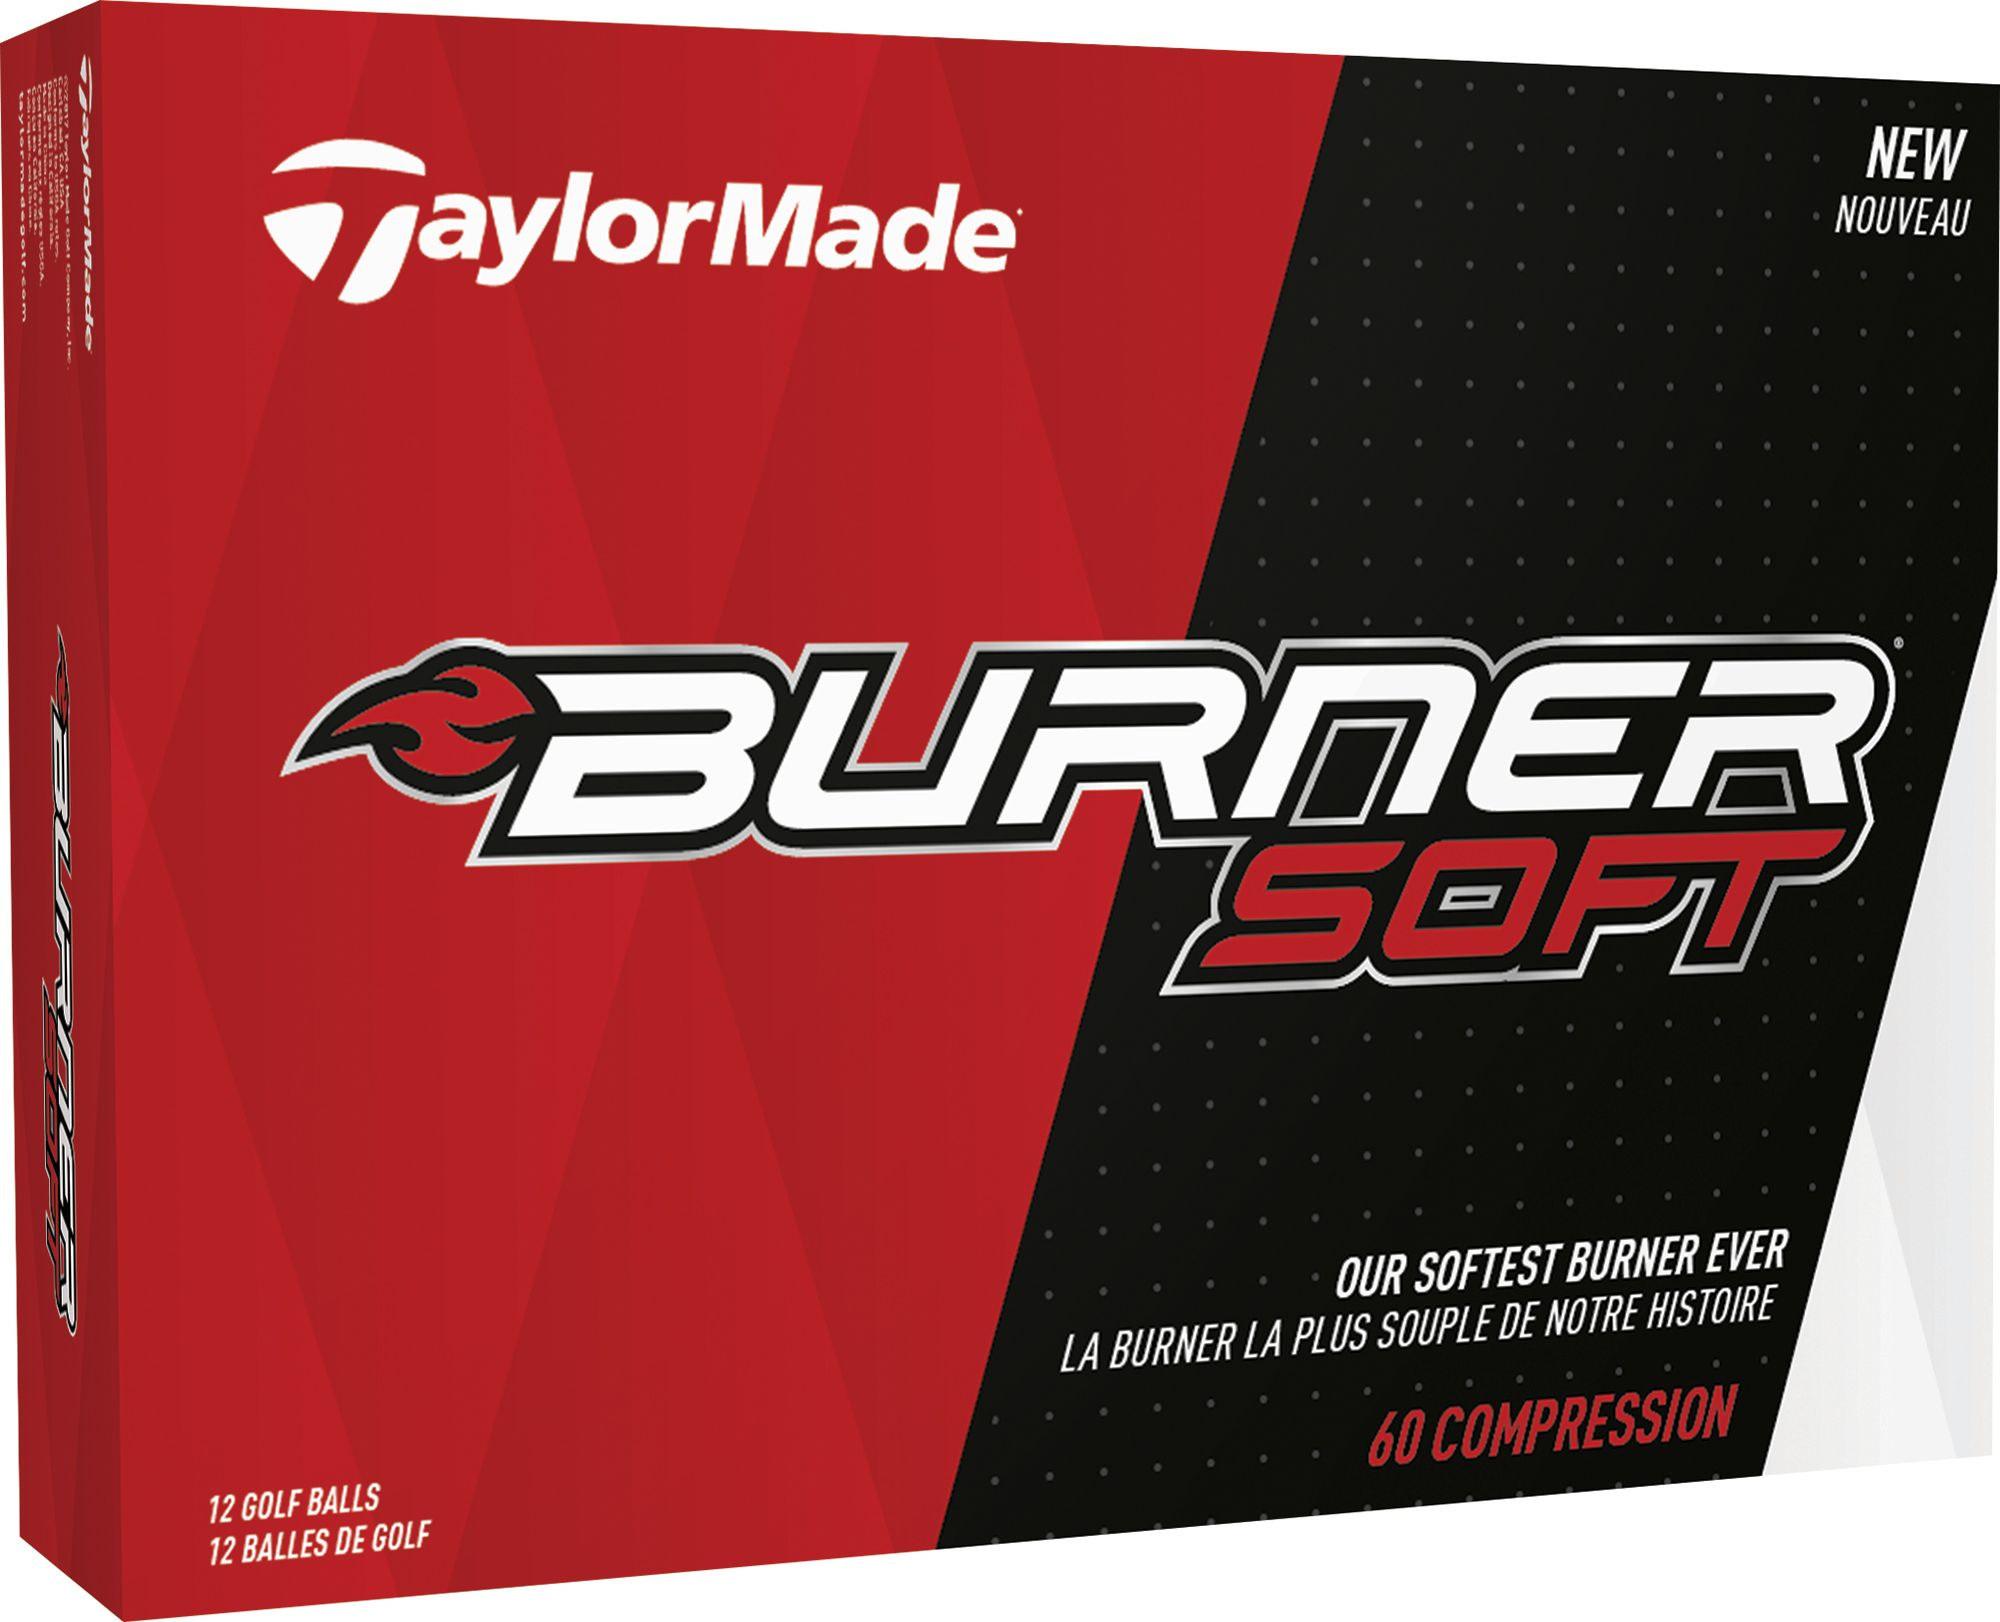 Game on closeouts sporting goods - Product Image Taylormade Burner Soft Golf Balls